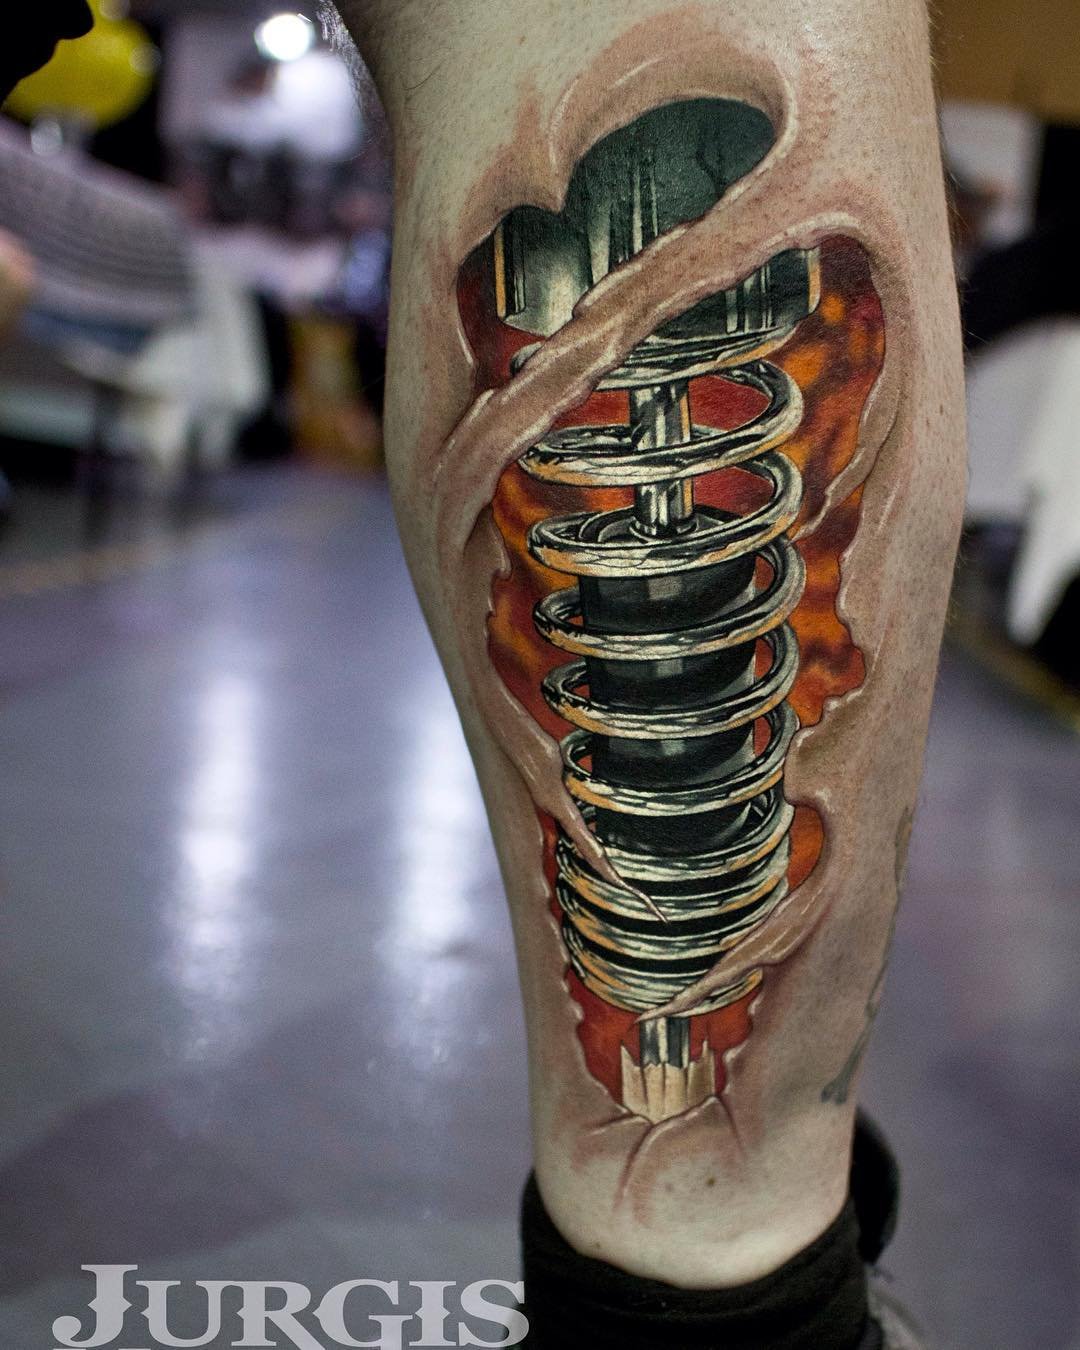 cool piston tattoo on leg by Jurgis Mikalauskas